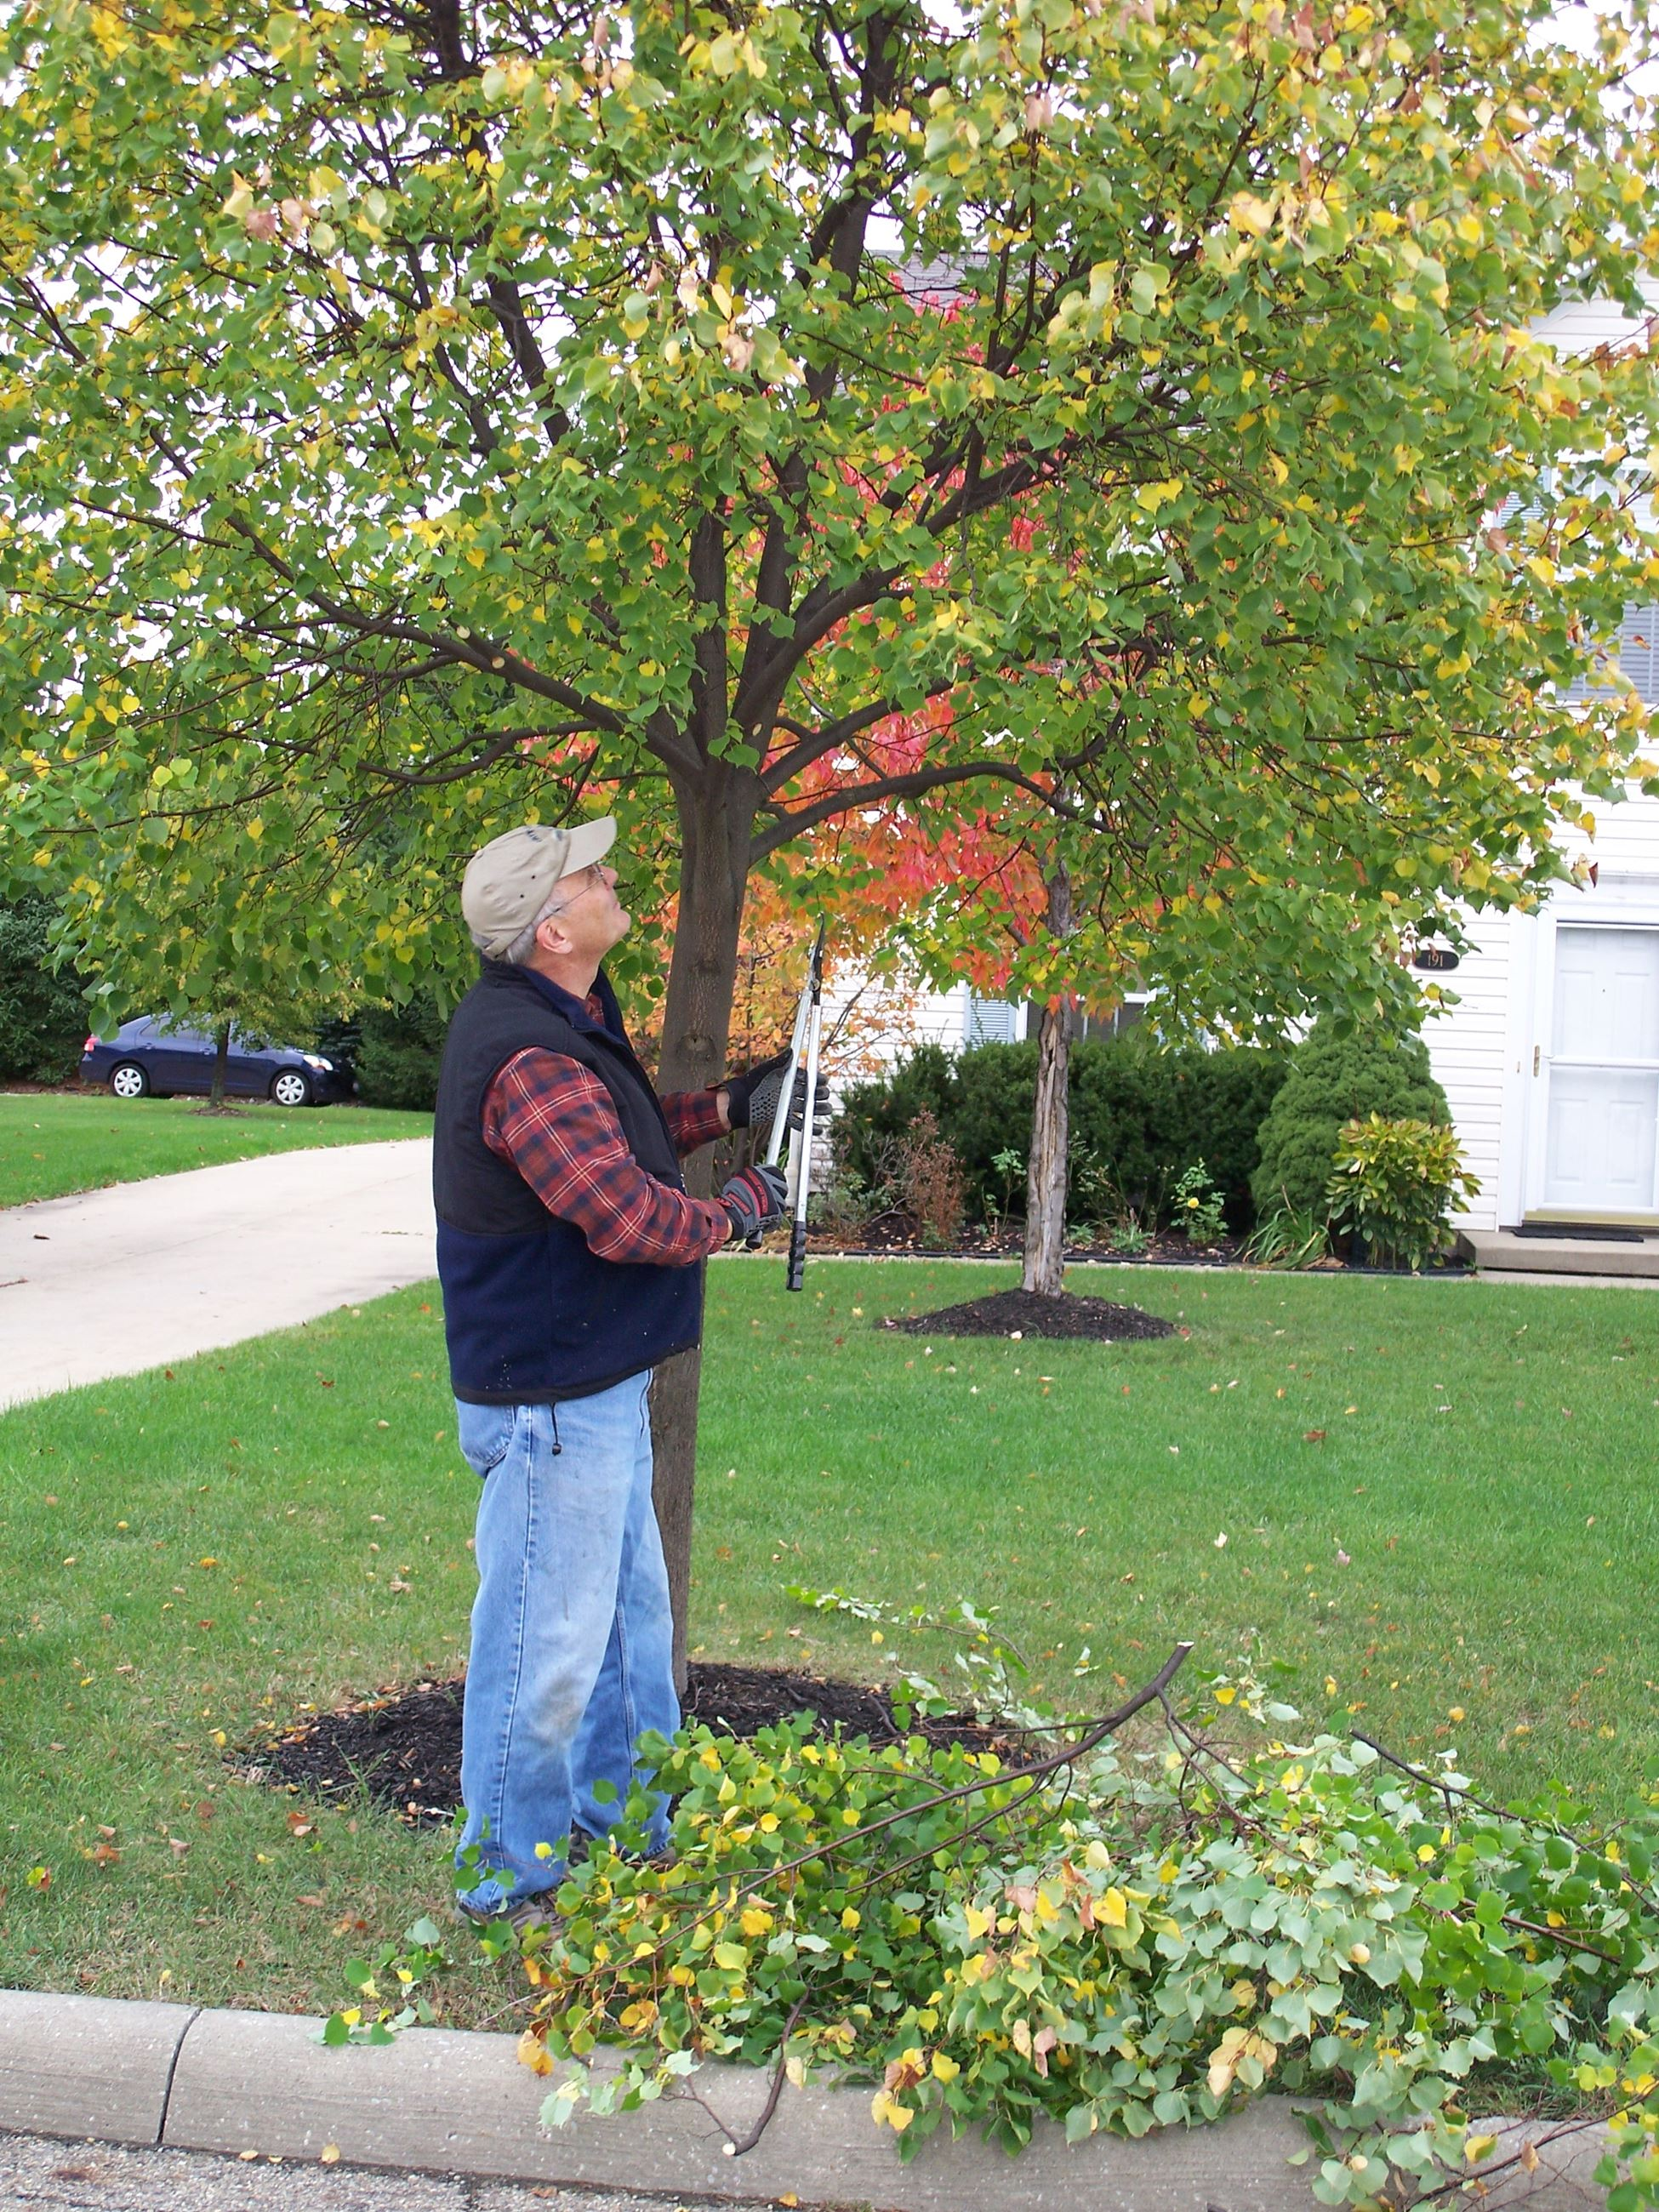 10-24-07 volunteer tree trimmers 006